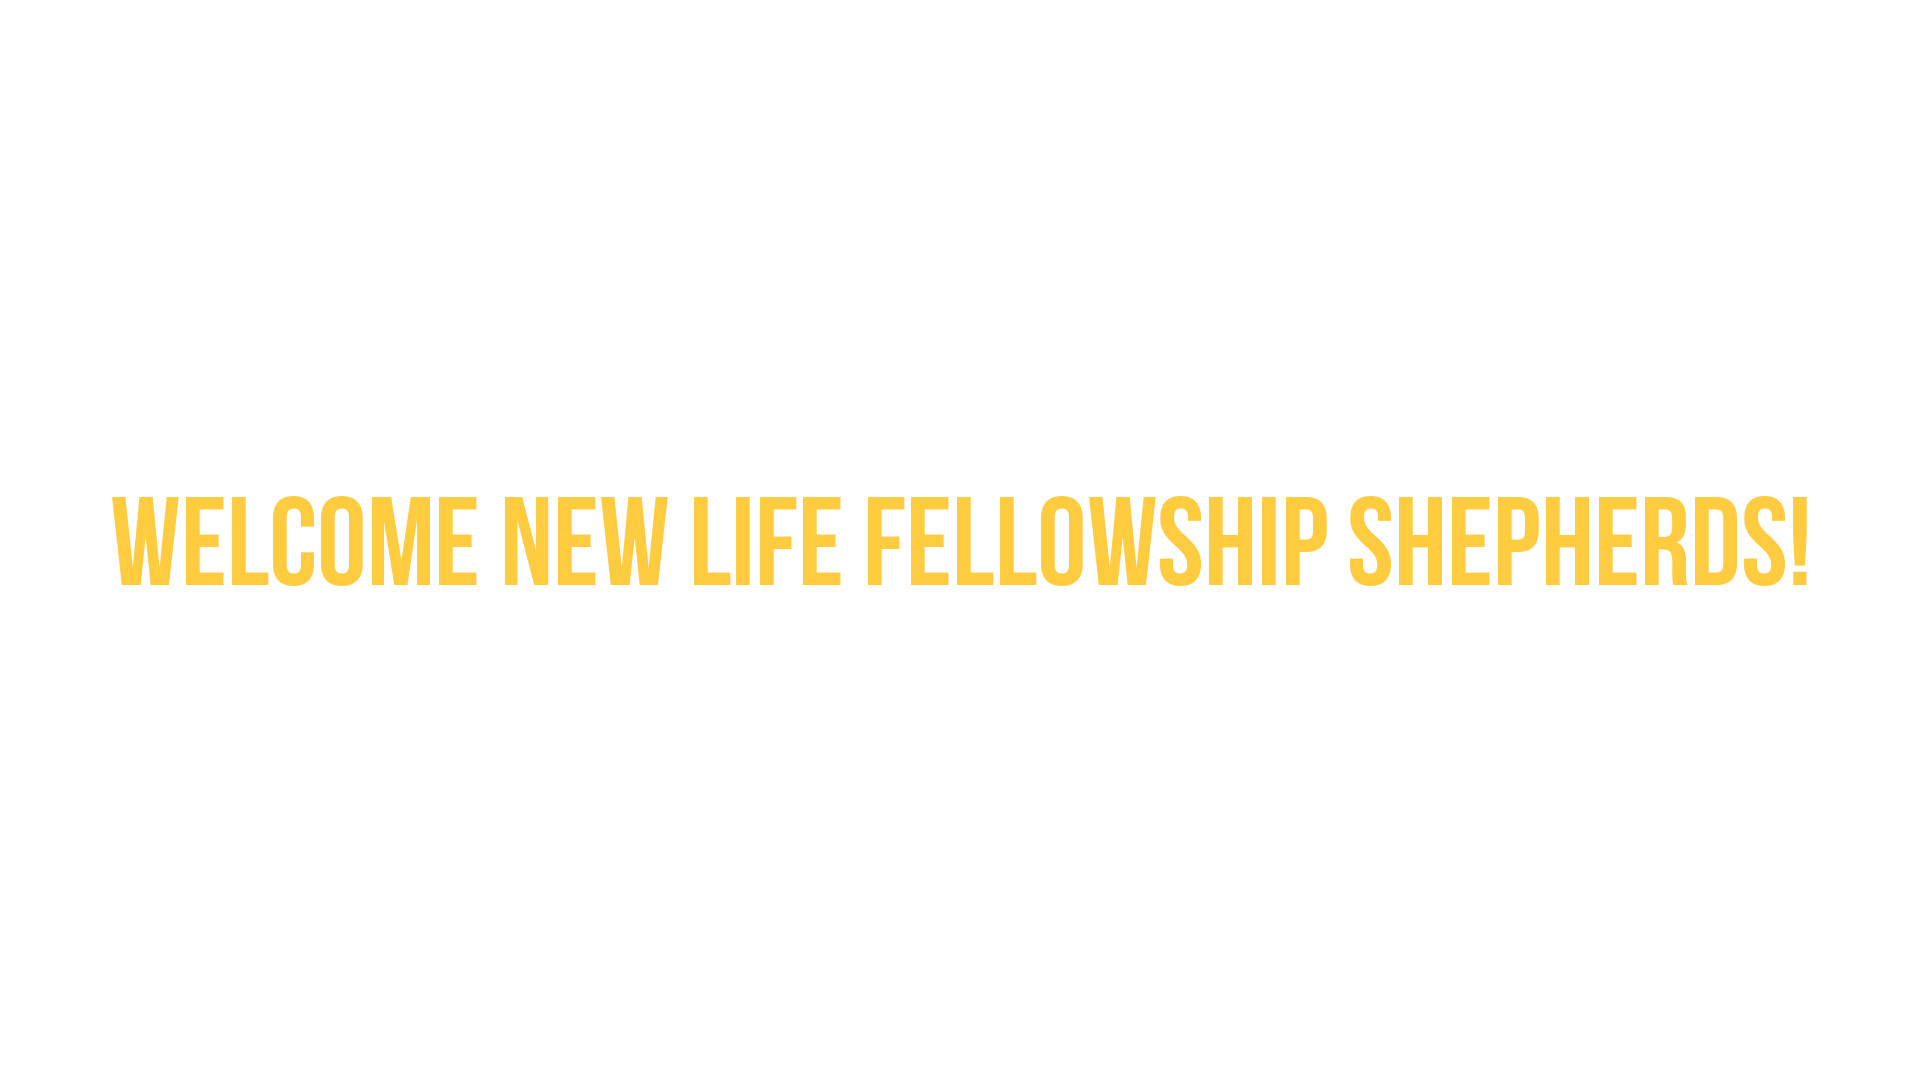 New Life Fellowship shepherds share their testimonies and encouragements about Family Church!